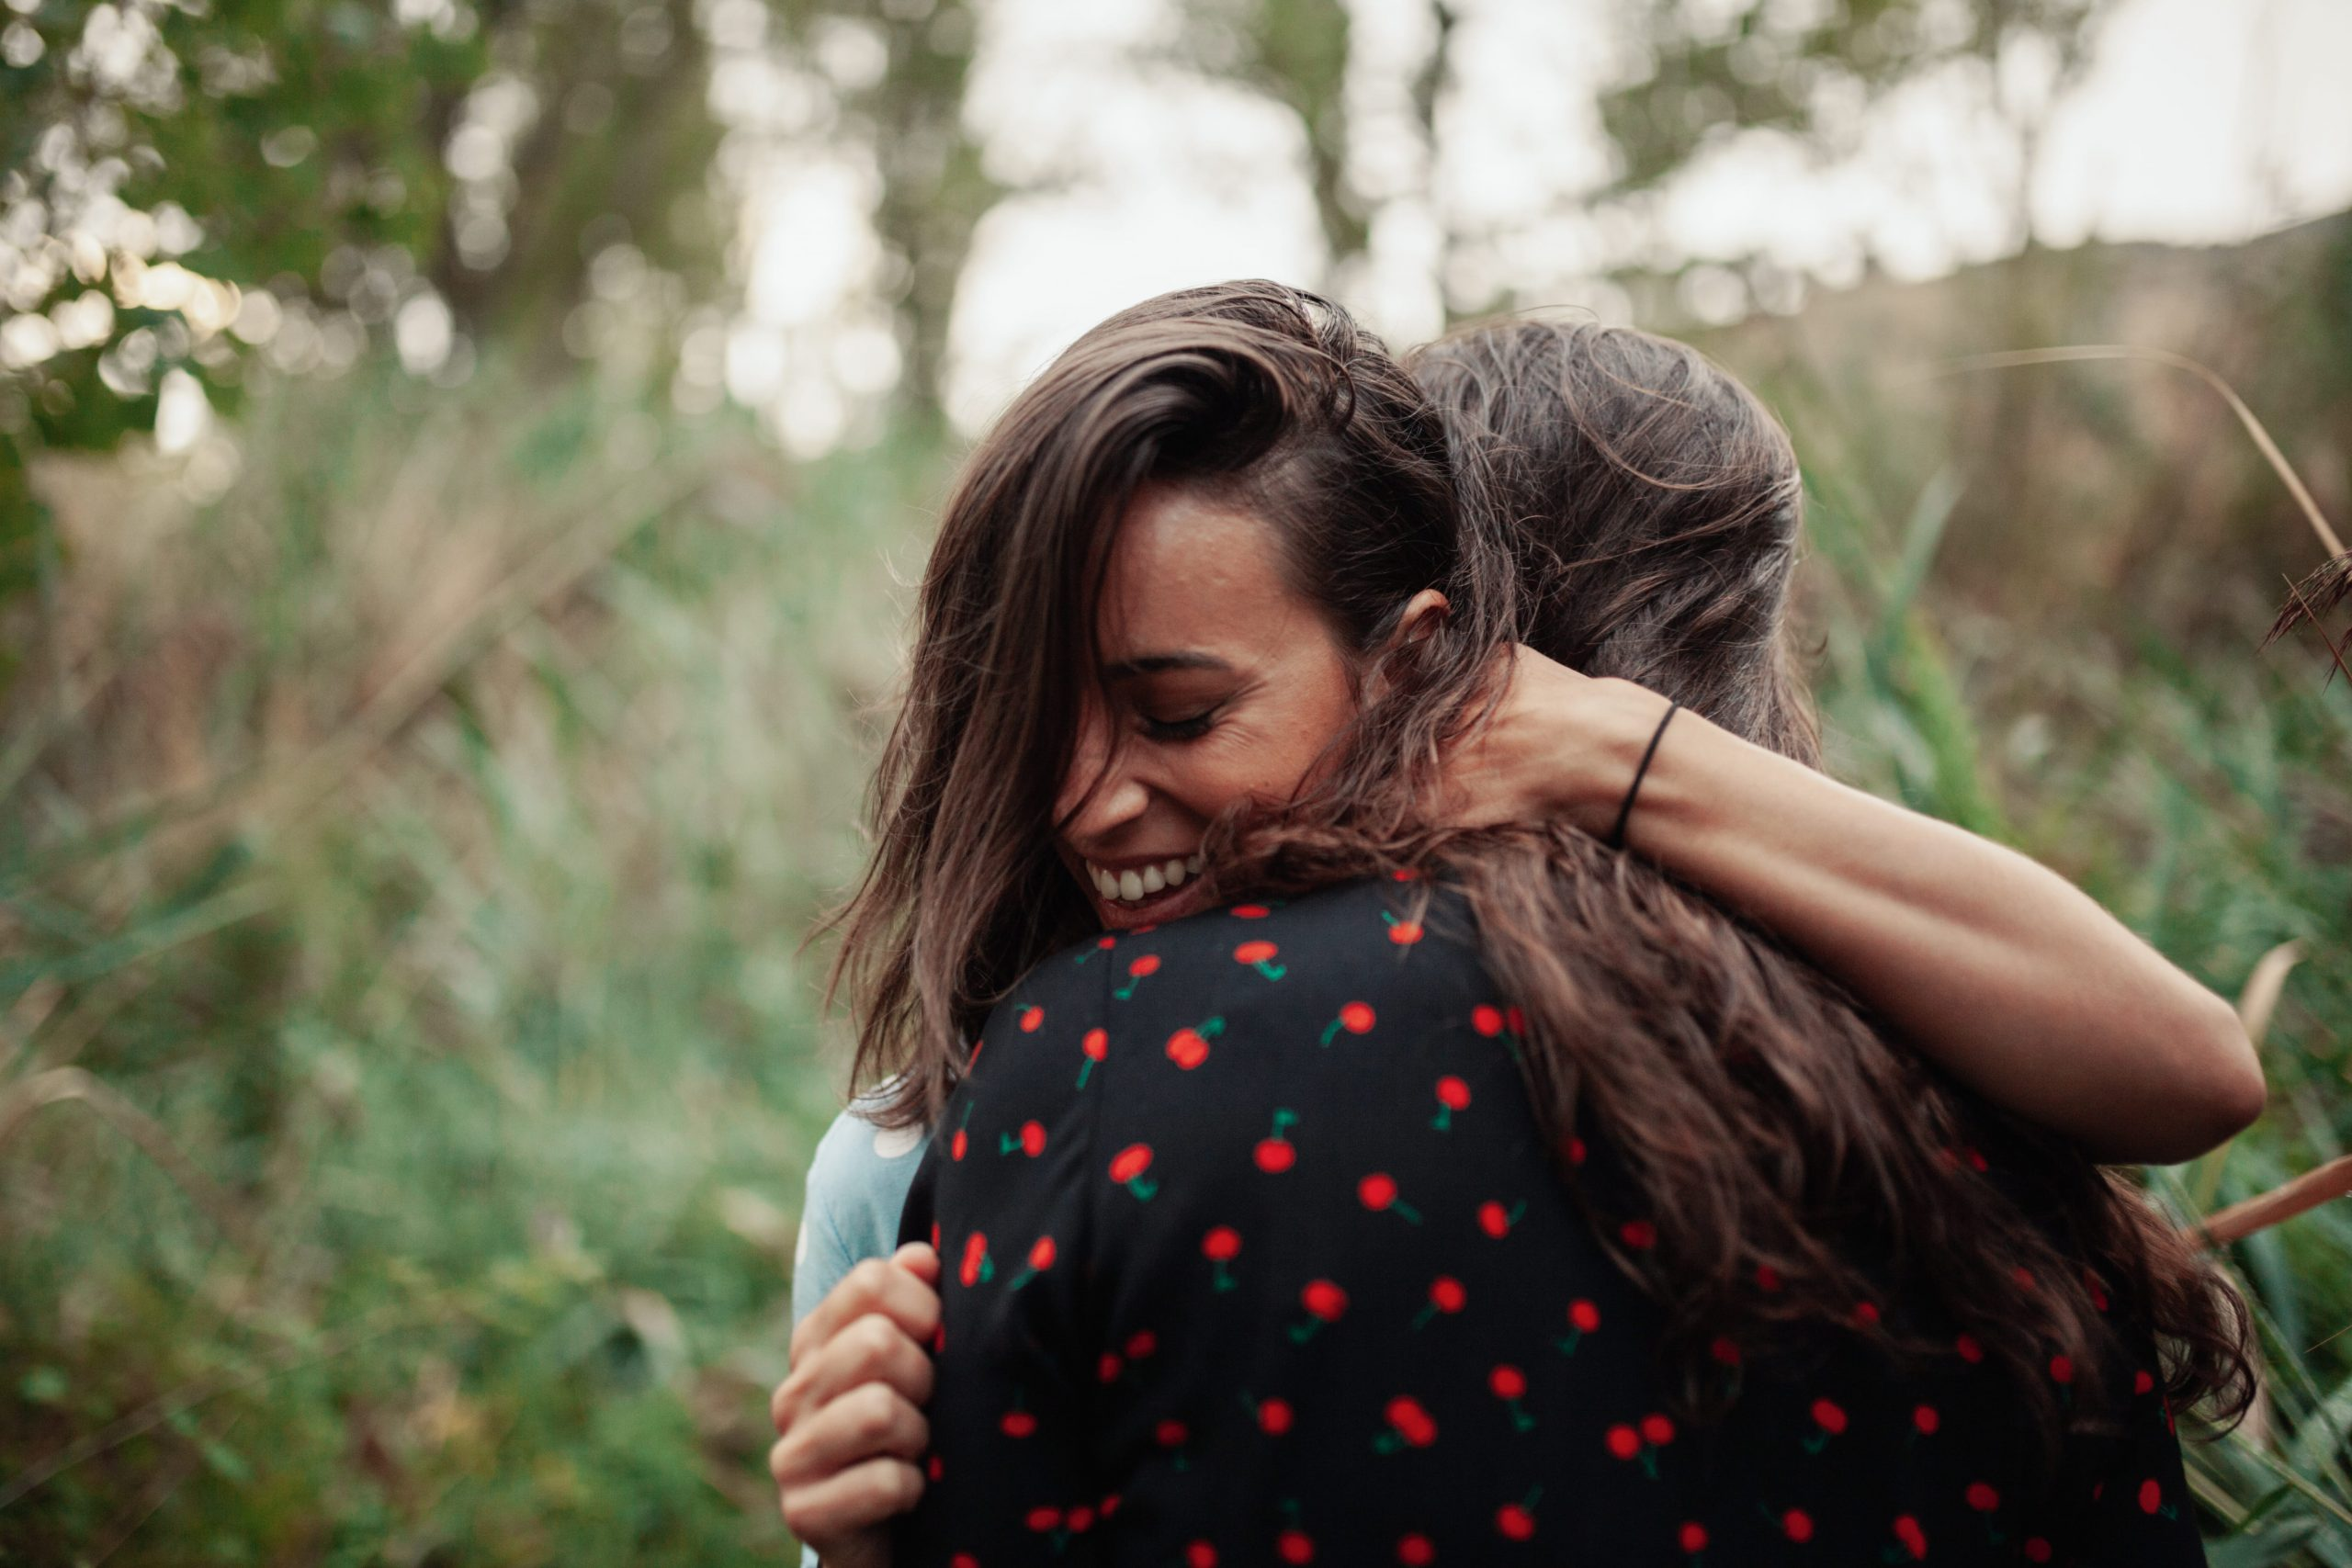 A young woman warmly embraces her friend.